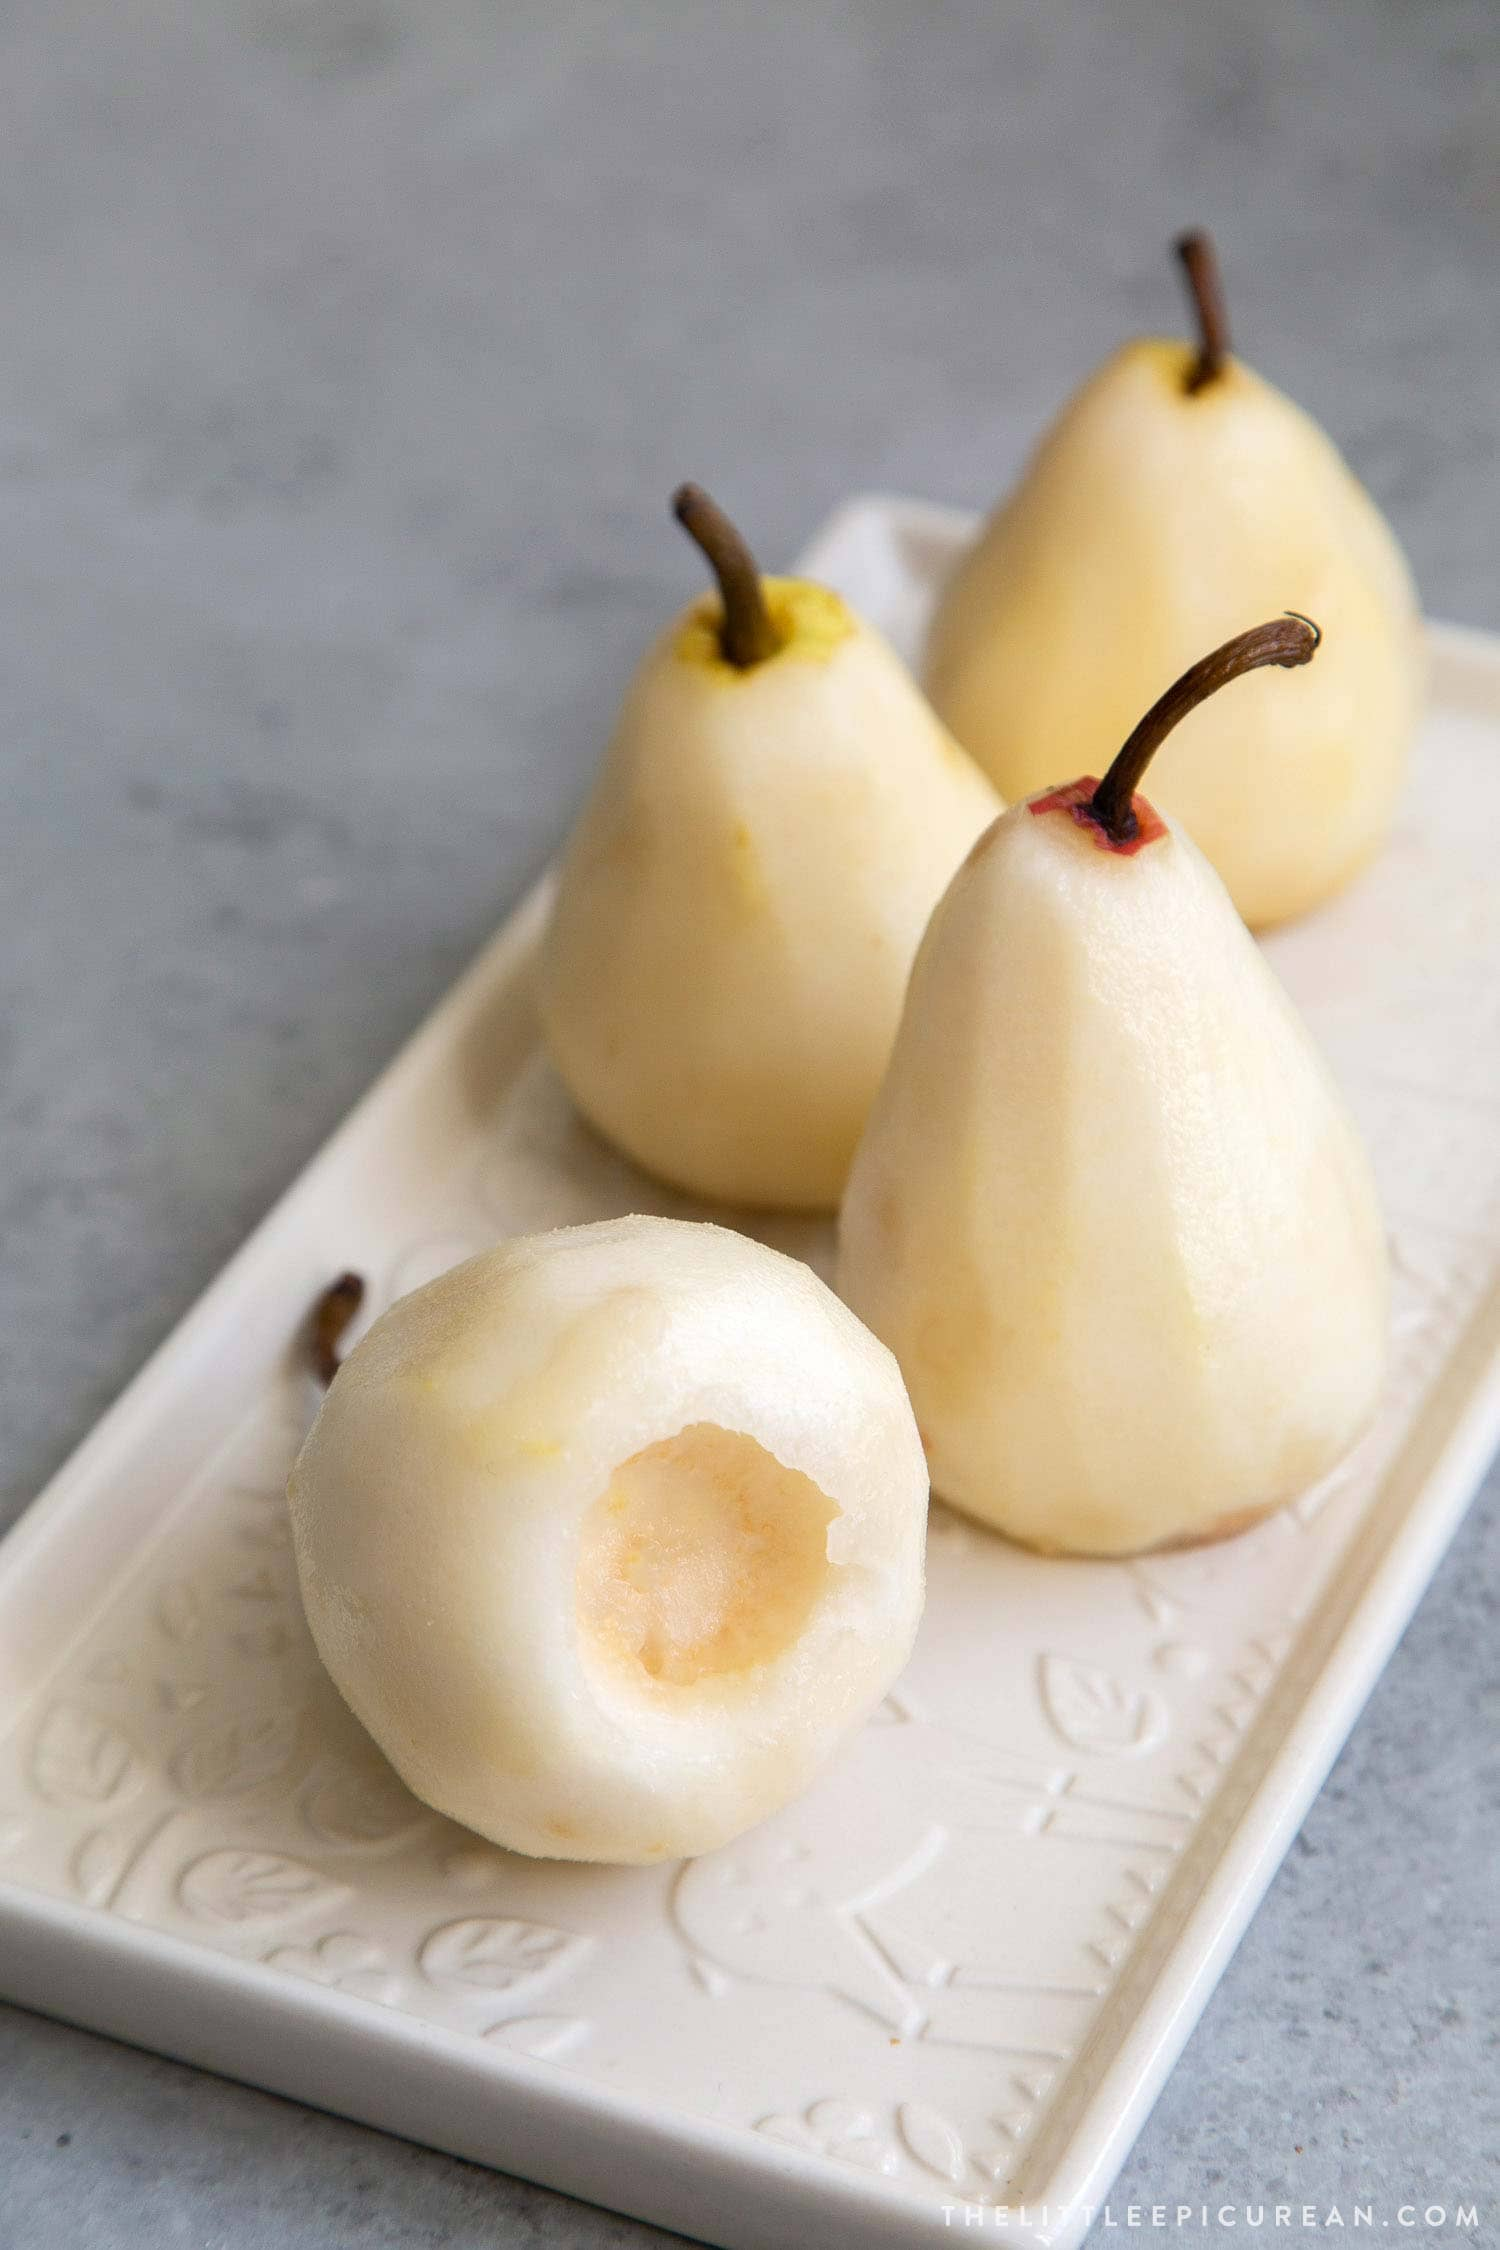 How to Poach Pears: peel pears, slice off 1/4-inch off bottom to flatten. Core out seeds from the bottom of pear.